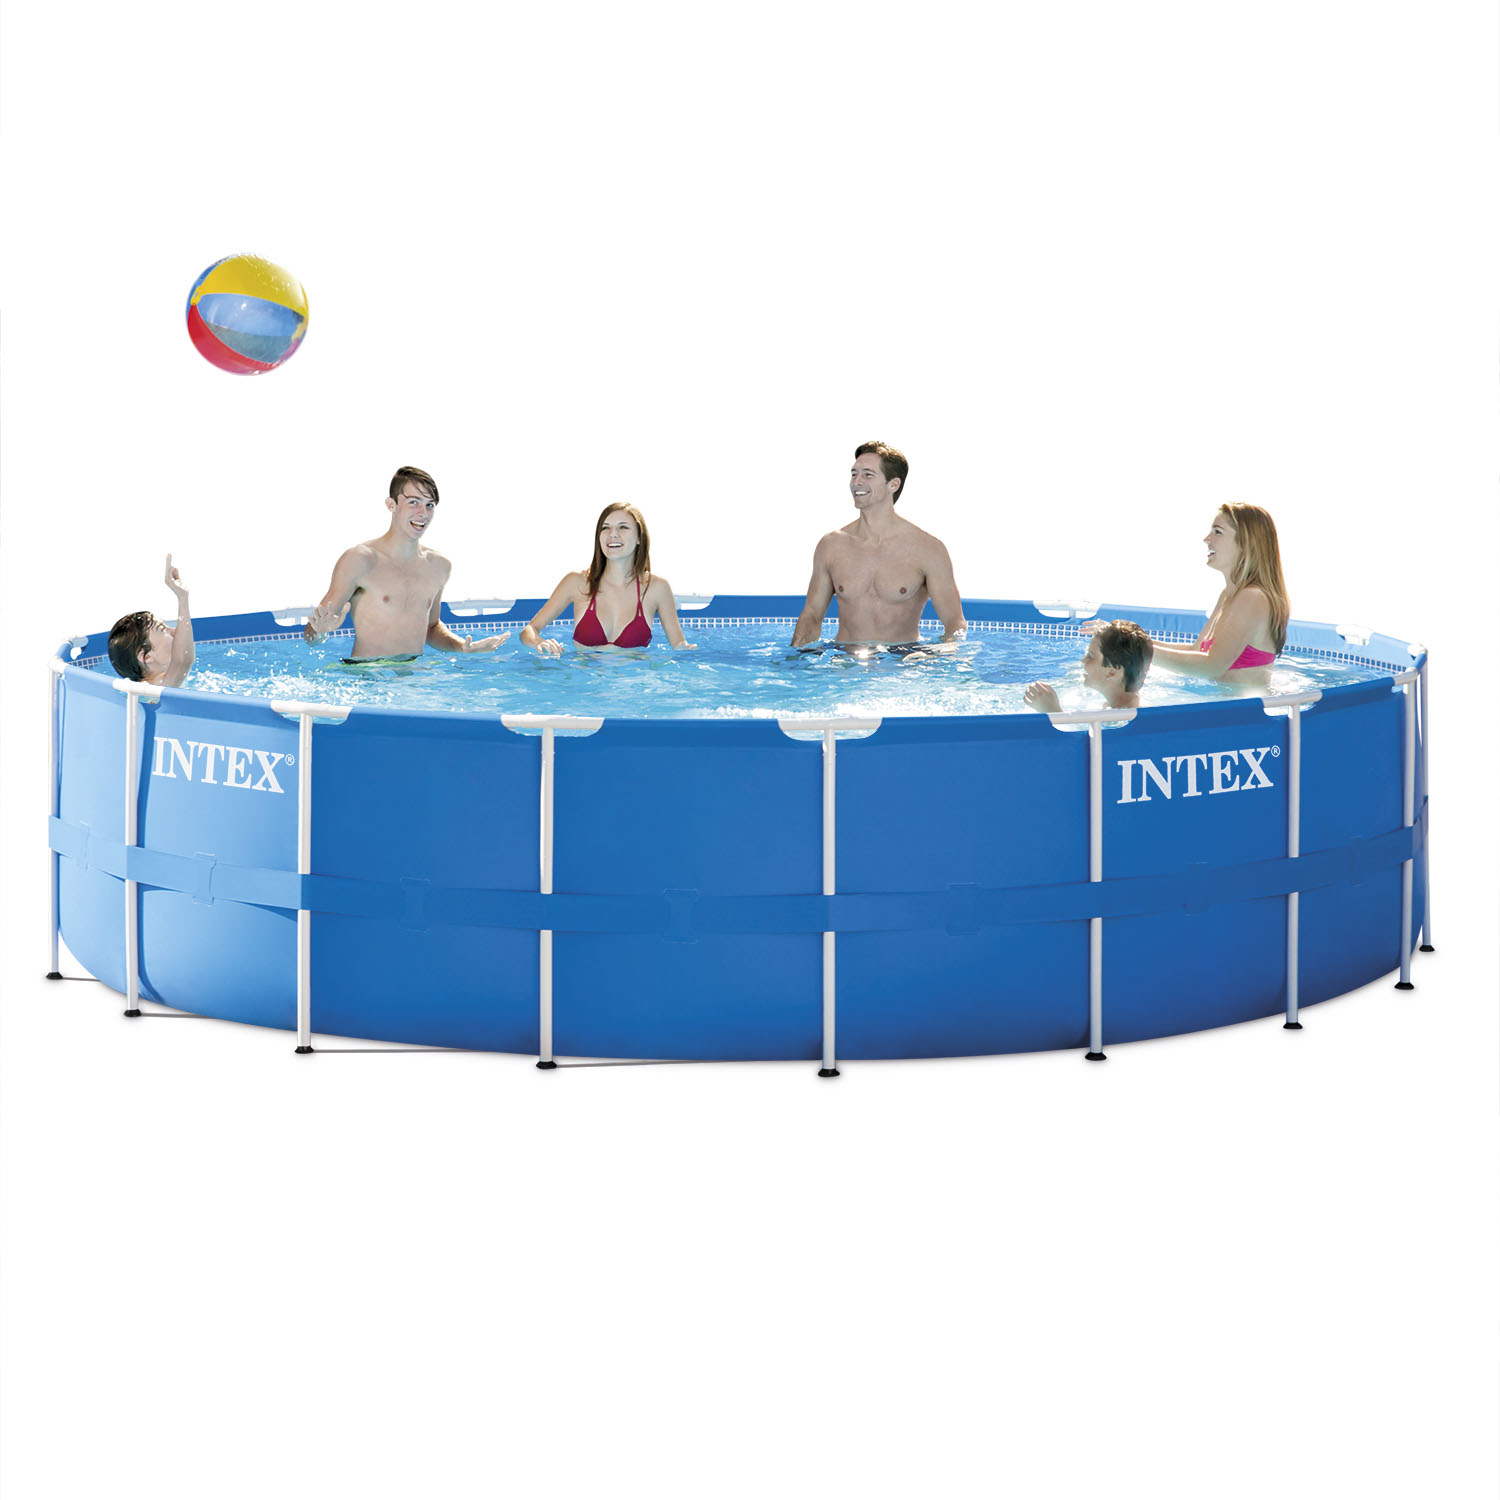 "Intex 18' x 48"" Metal Frame Above Ground Pool with Filter Pump"